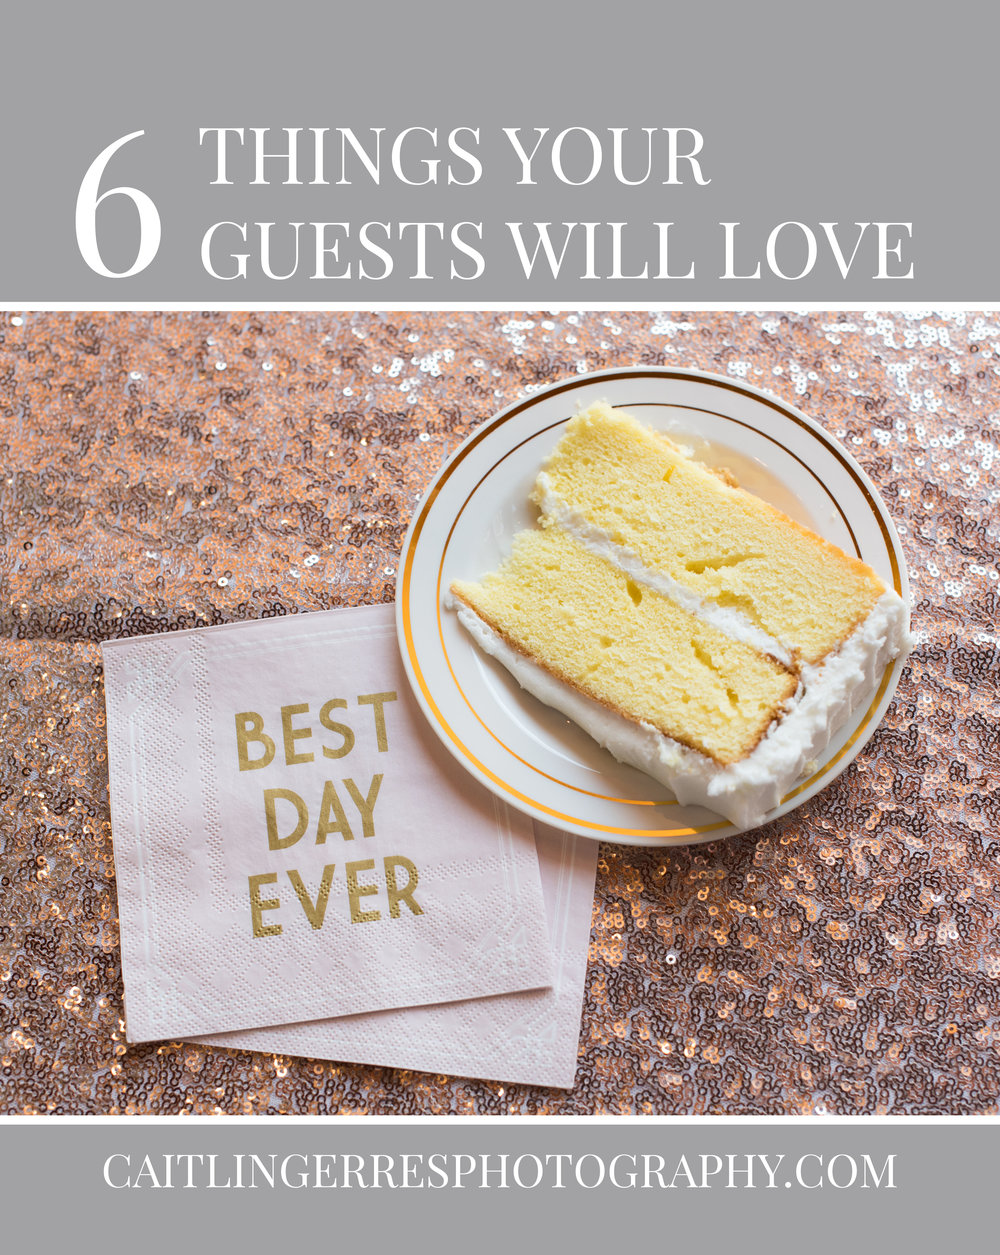 6 Things Guests Will Love.jpg